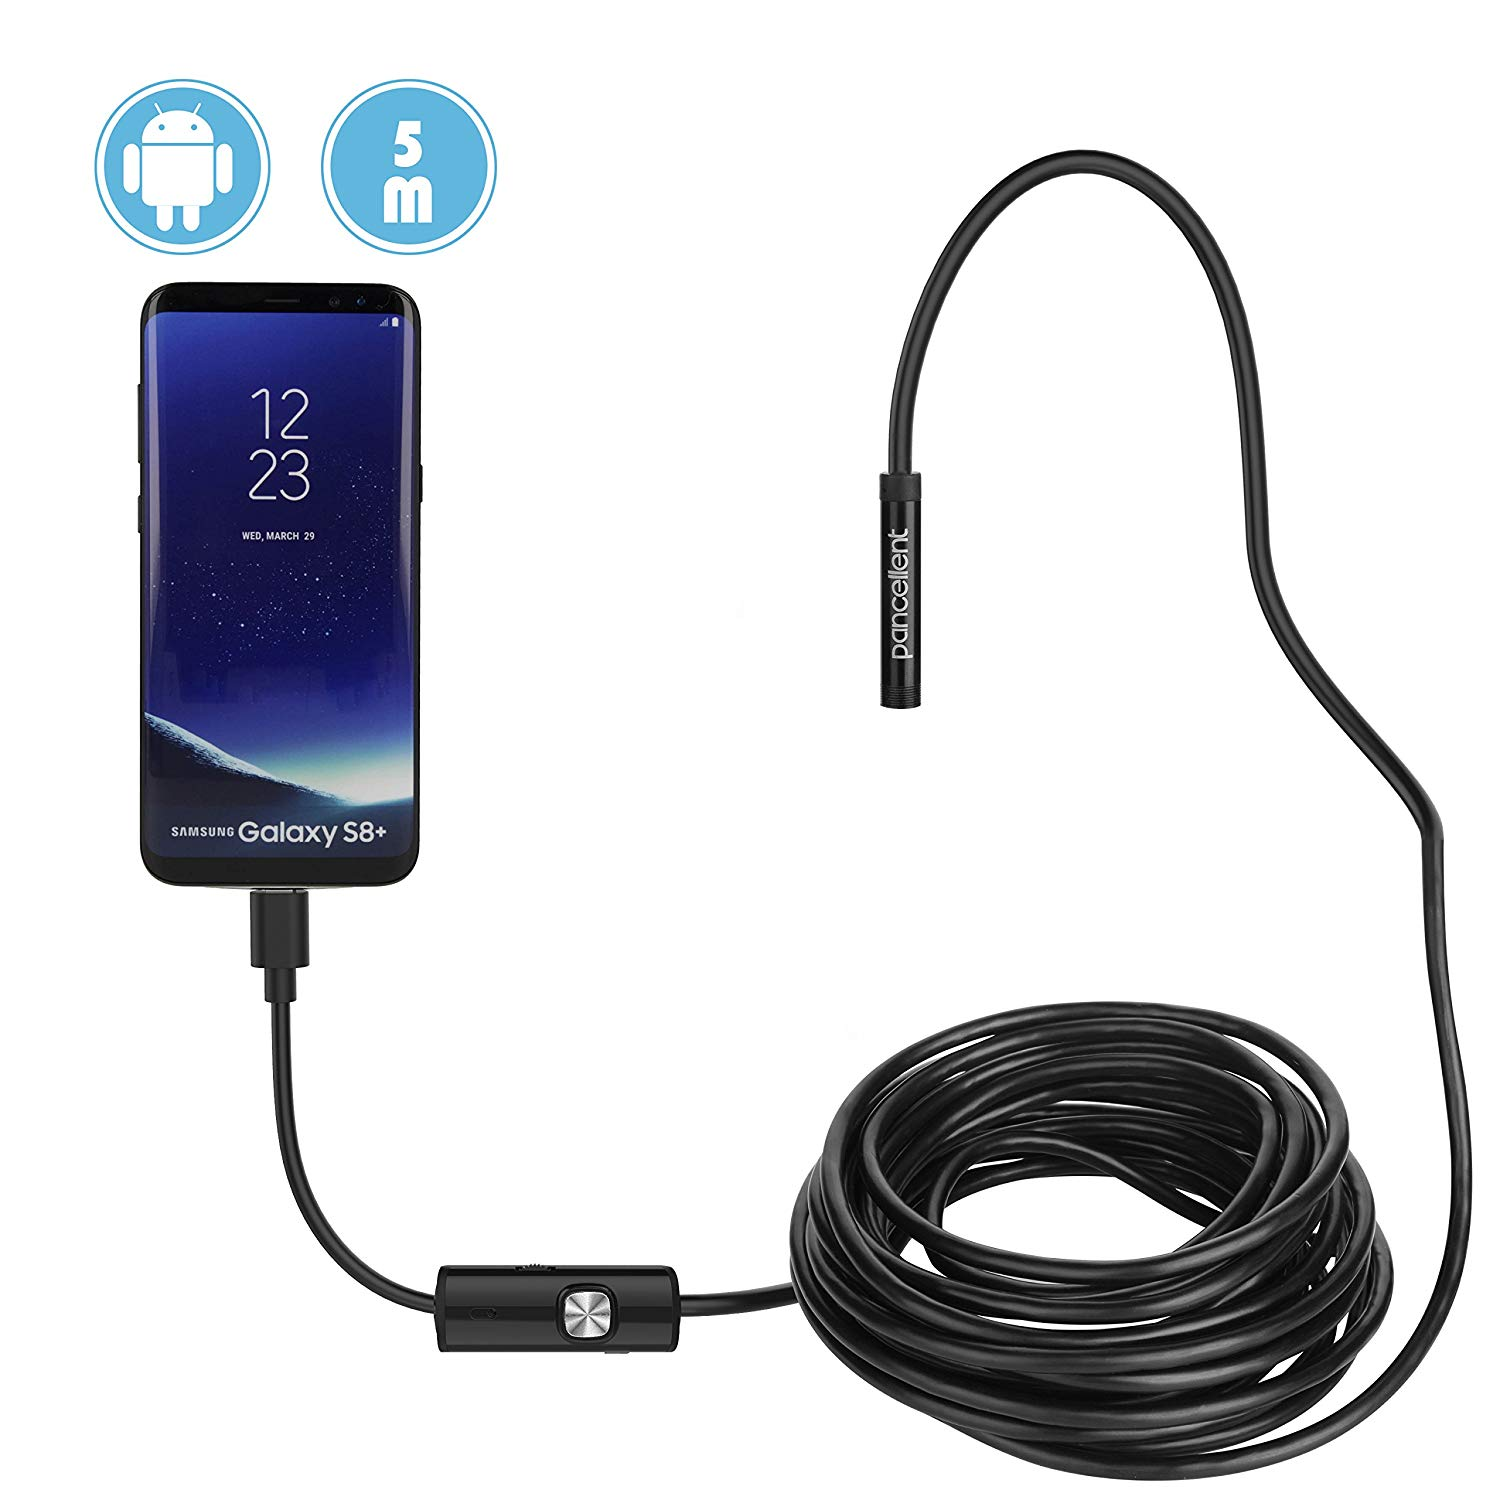 Pancellent USB Android Endoscope 2.0 Megapixels CMOS HD 2 in 1 Waterproof Borescope Inspection Camera Rigid Snake Cable